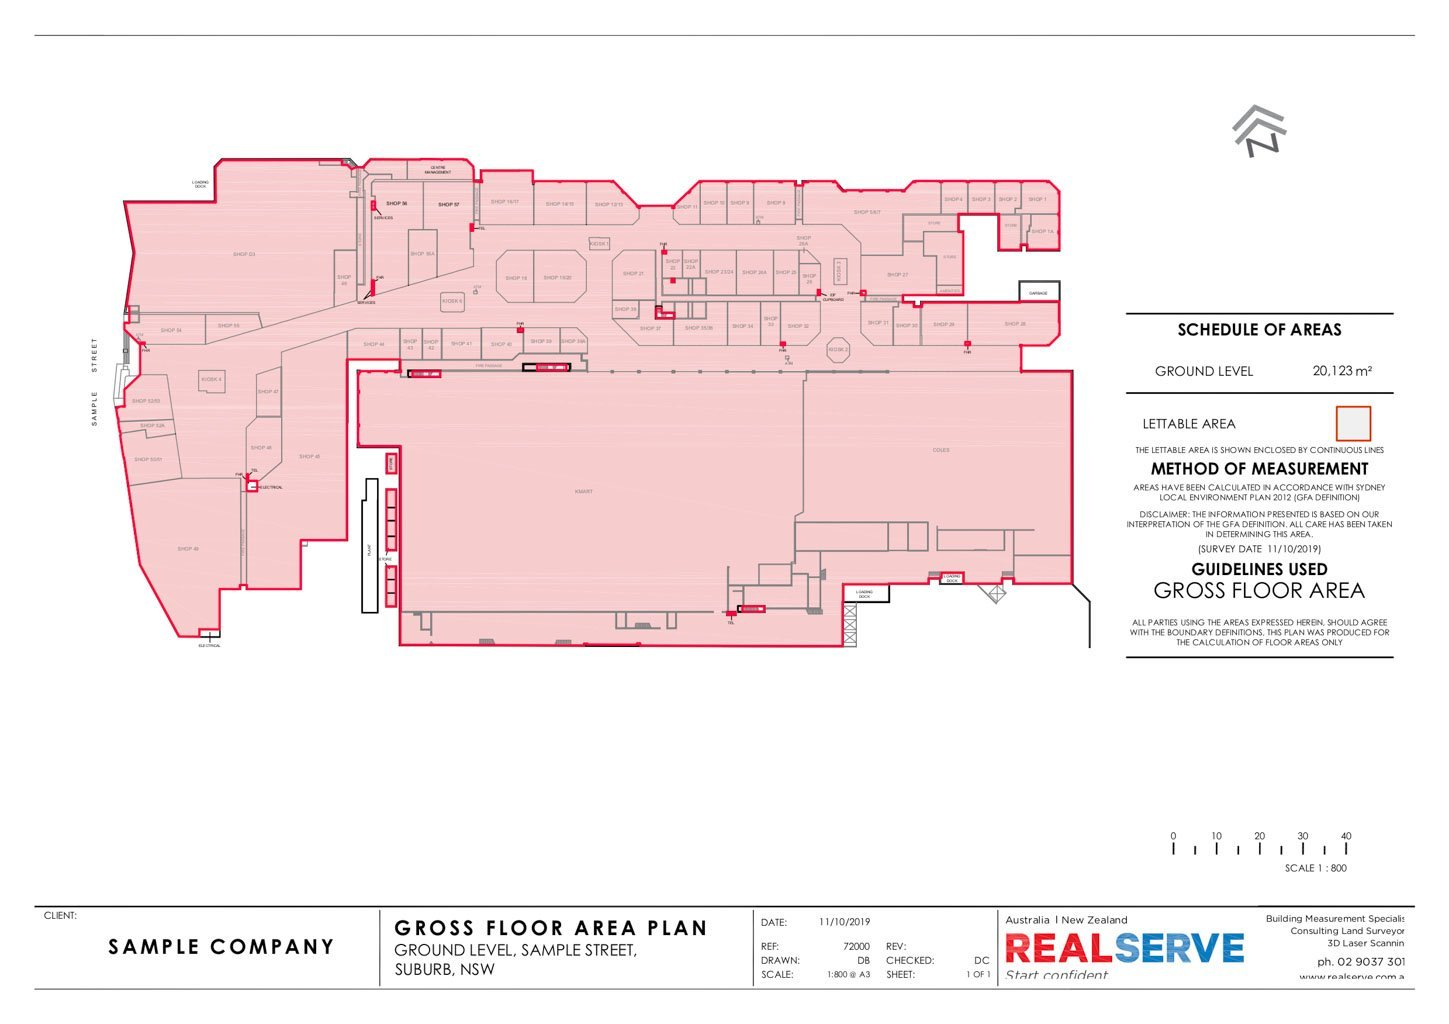 REALSERVE GROSS FLOOR AREA SURVEY SAMPLE OF A COMMERCIAL BUILDING SPACE